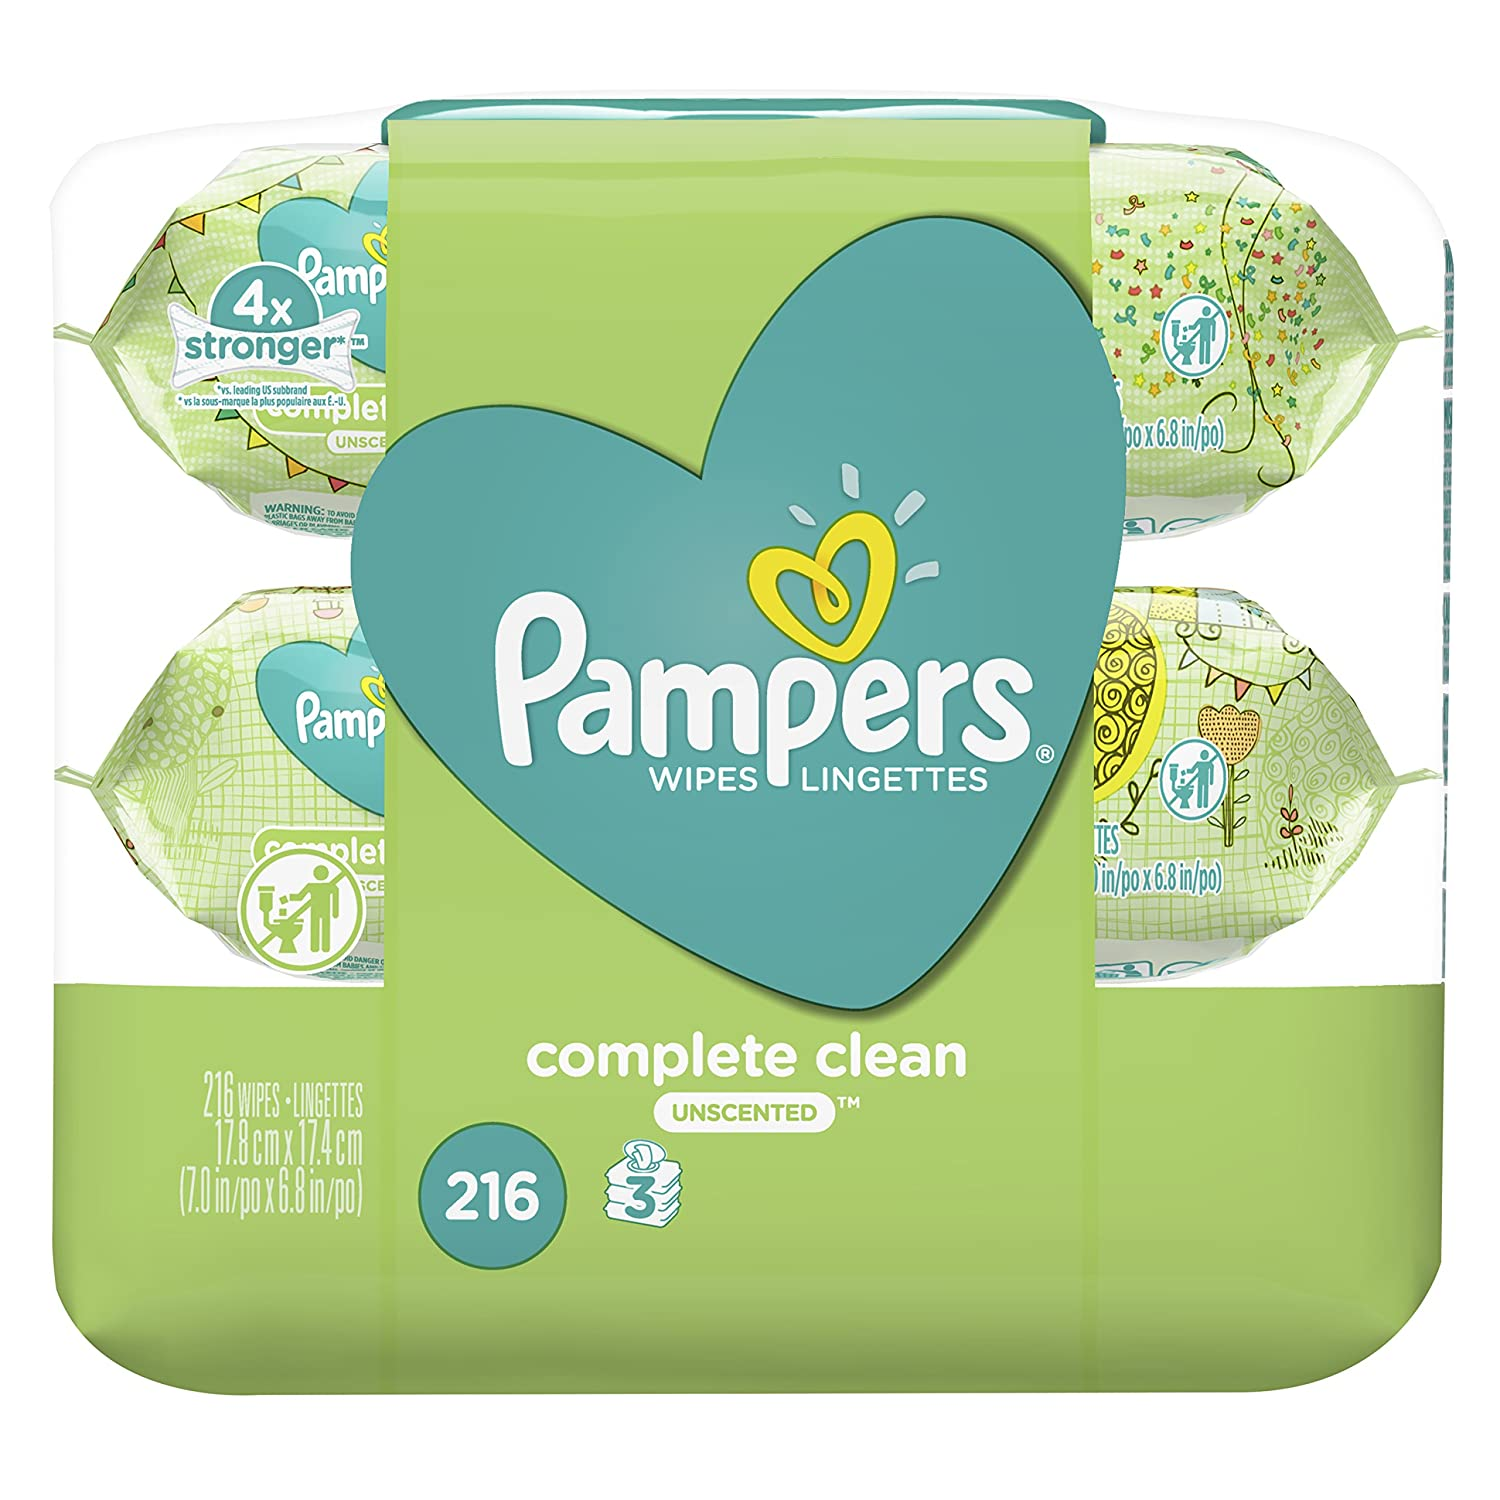 Pampers Baby Wipes Complete Clean UNSCENTED 3X Pop-Top, 216 Count Procter and Gamble